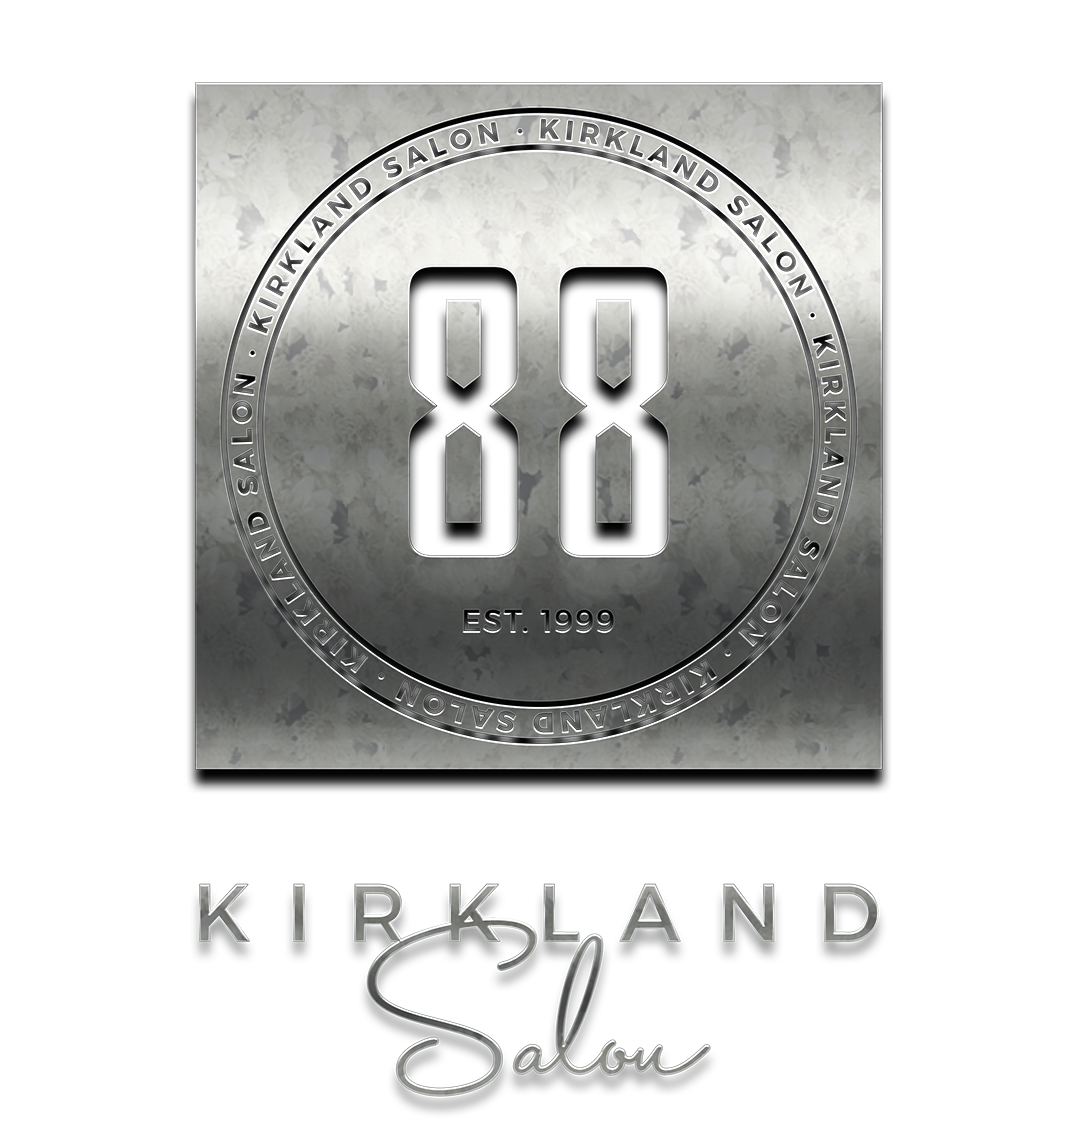 ___FOOTER [at 40 x 72][v5] 88 Kirkland Salon Logo [grunge metal][v5][drop][ fused 9 x 9] by Graham Hnedak Brand G Creative 06 SEPT 2018.png